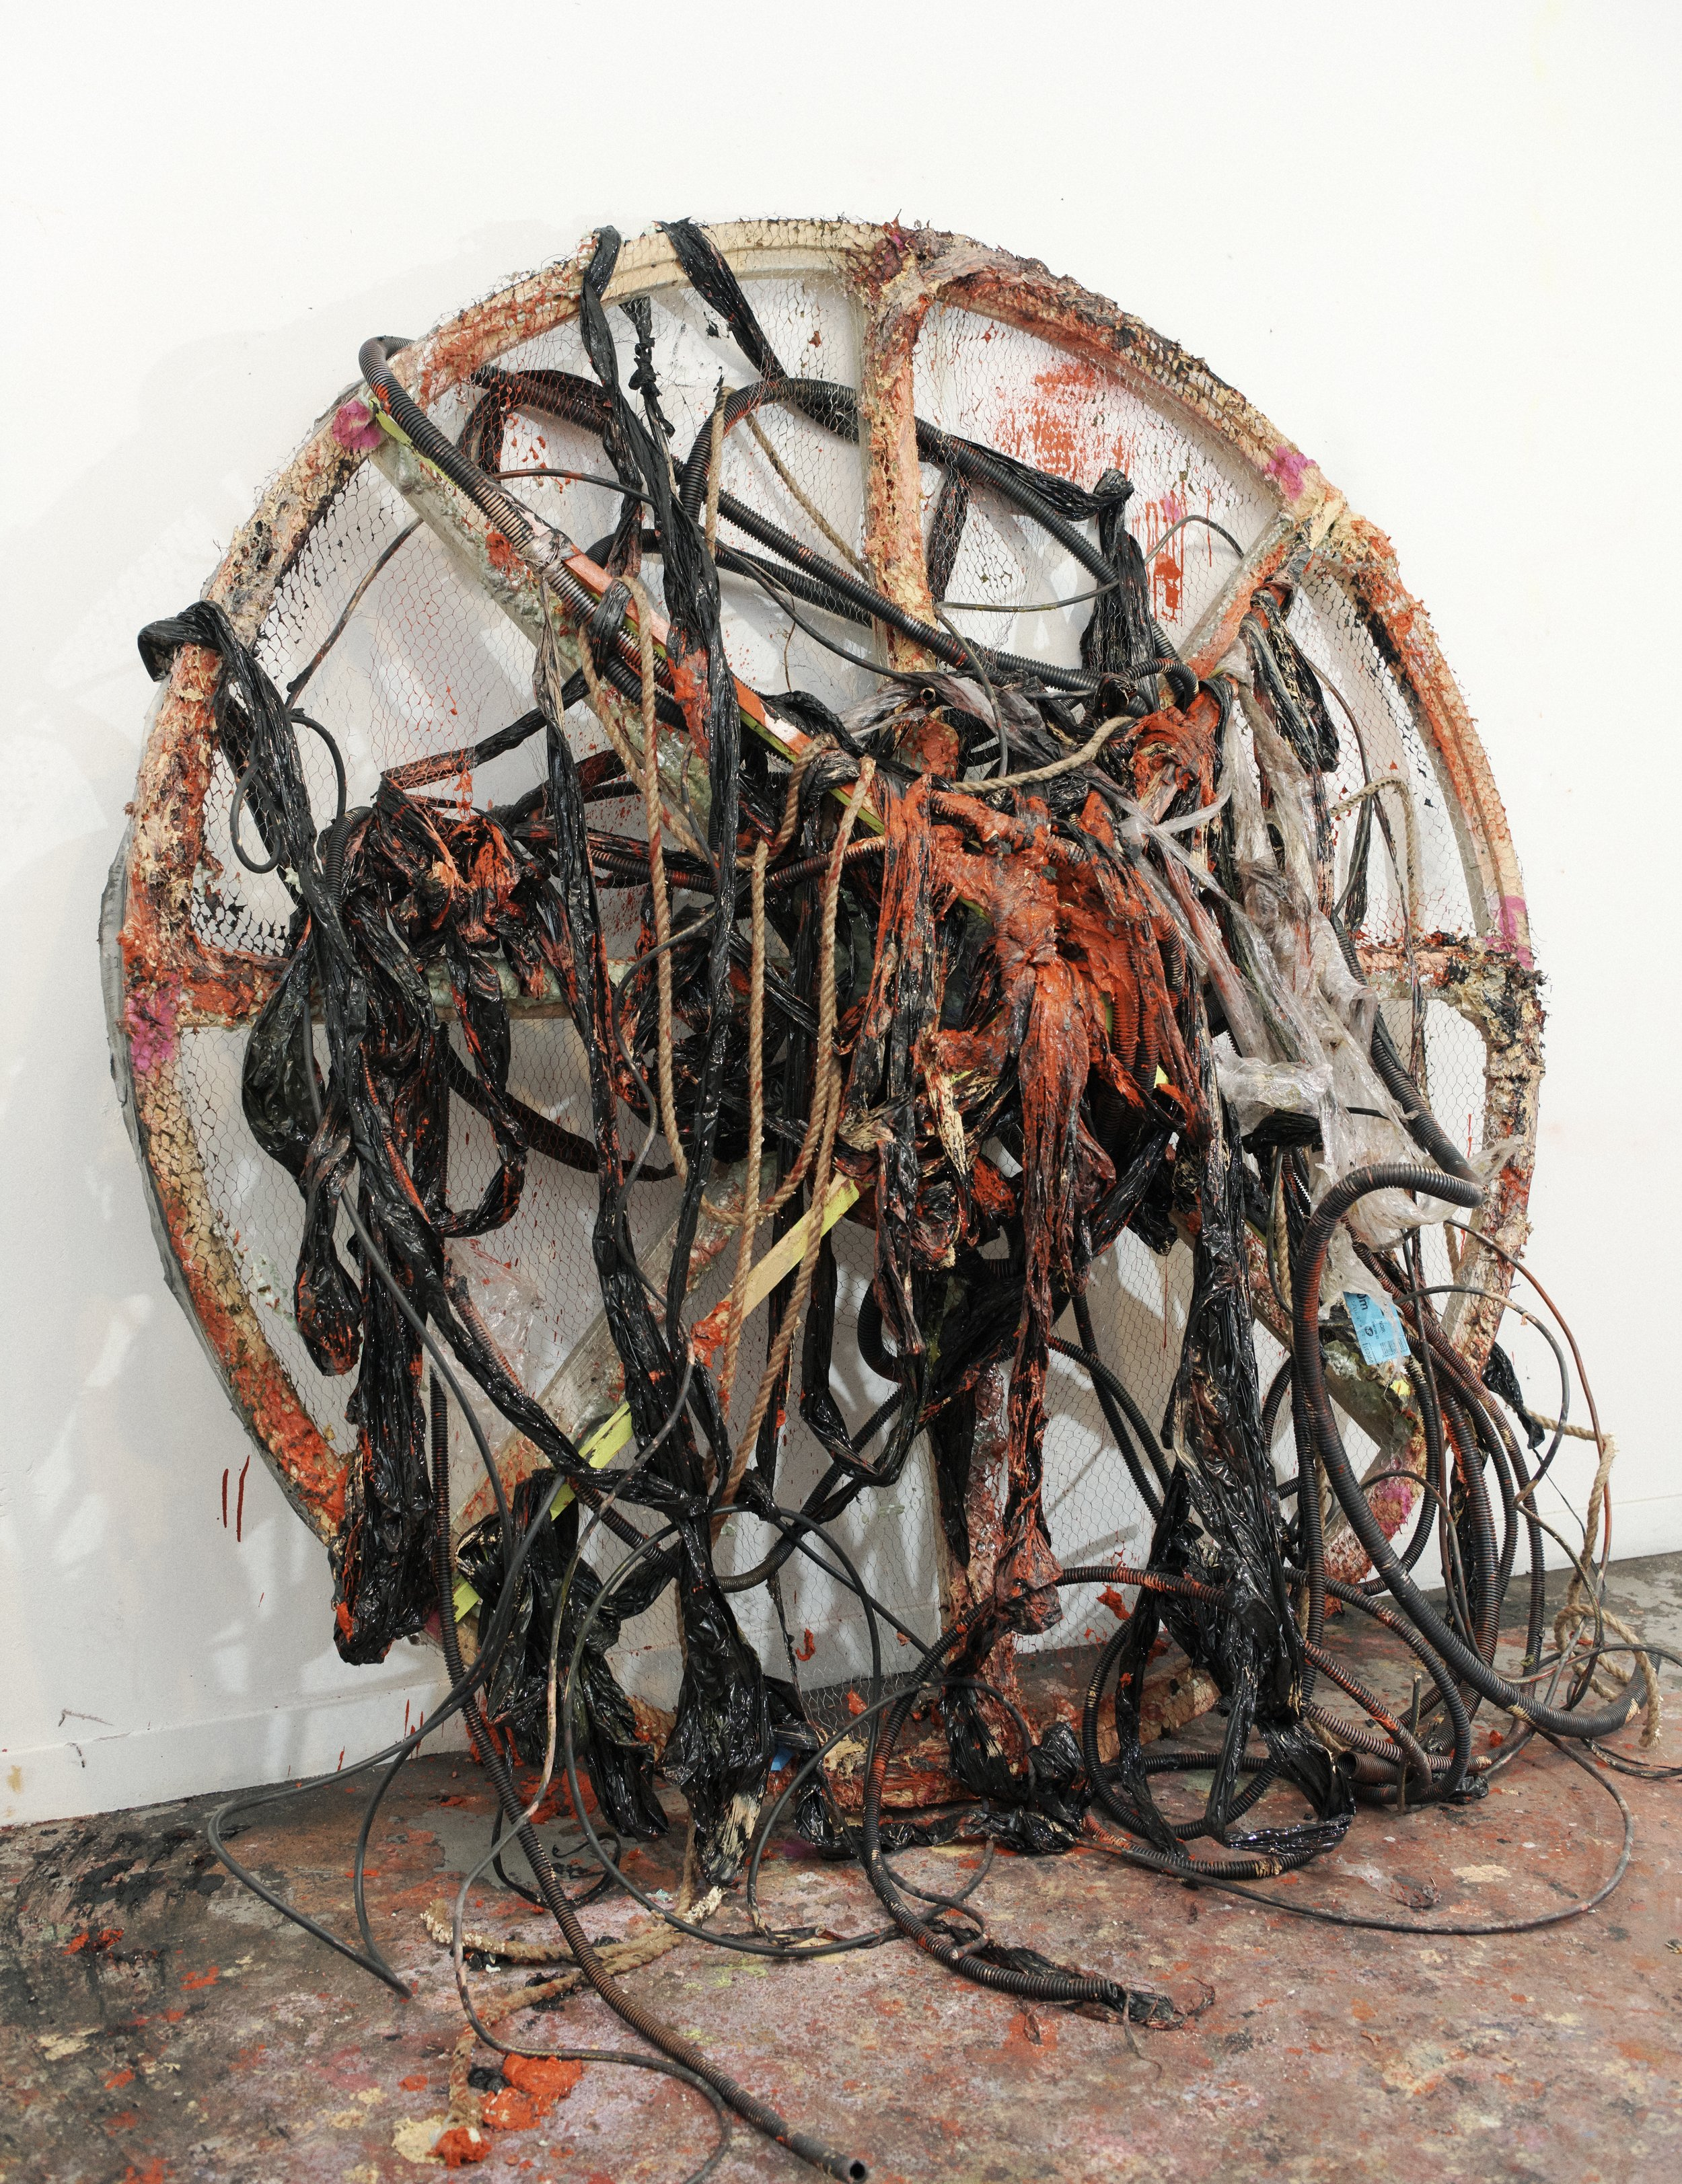 Disconnect, 2019 Oil, gesso, acrylic, plastic, electric cables, metal wire, plastic tubes, rope, polyurethane foam on wood 220 x 220 x 40 cm